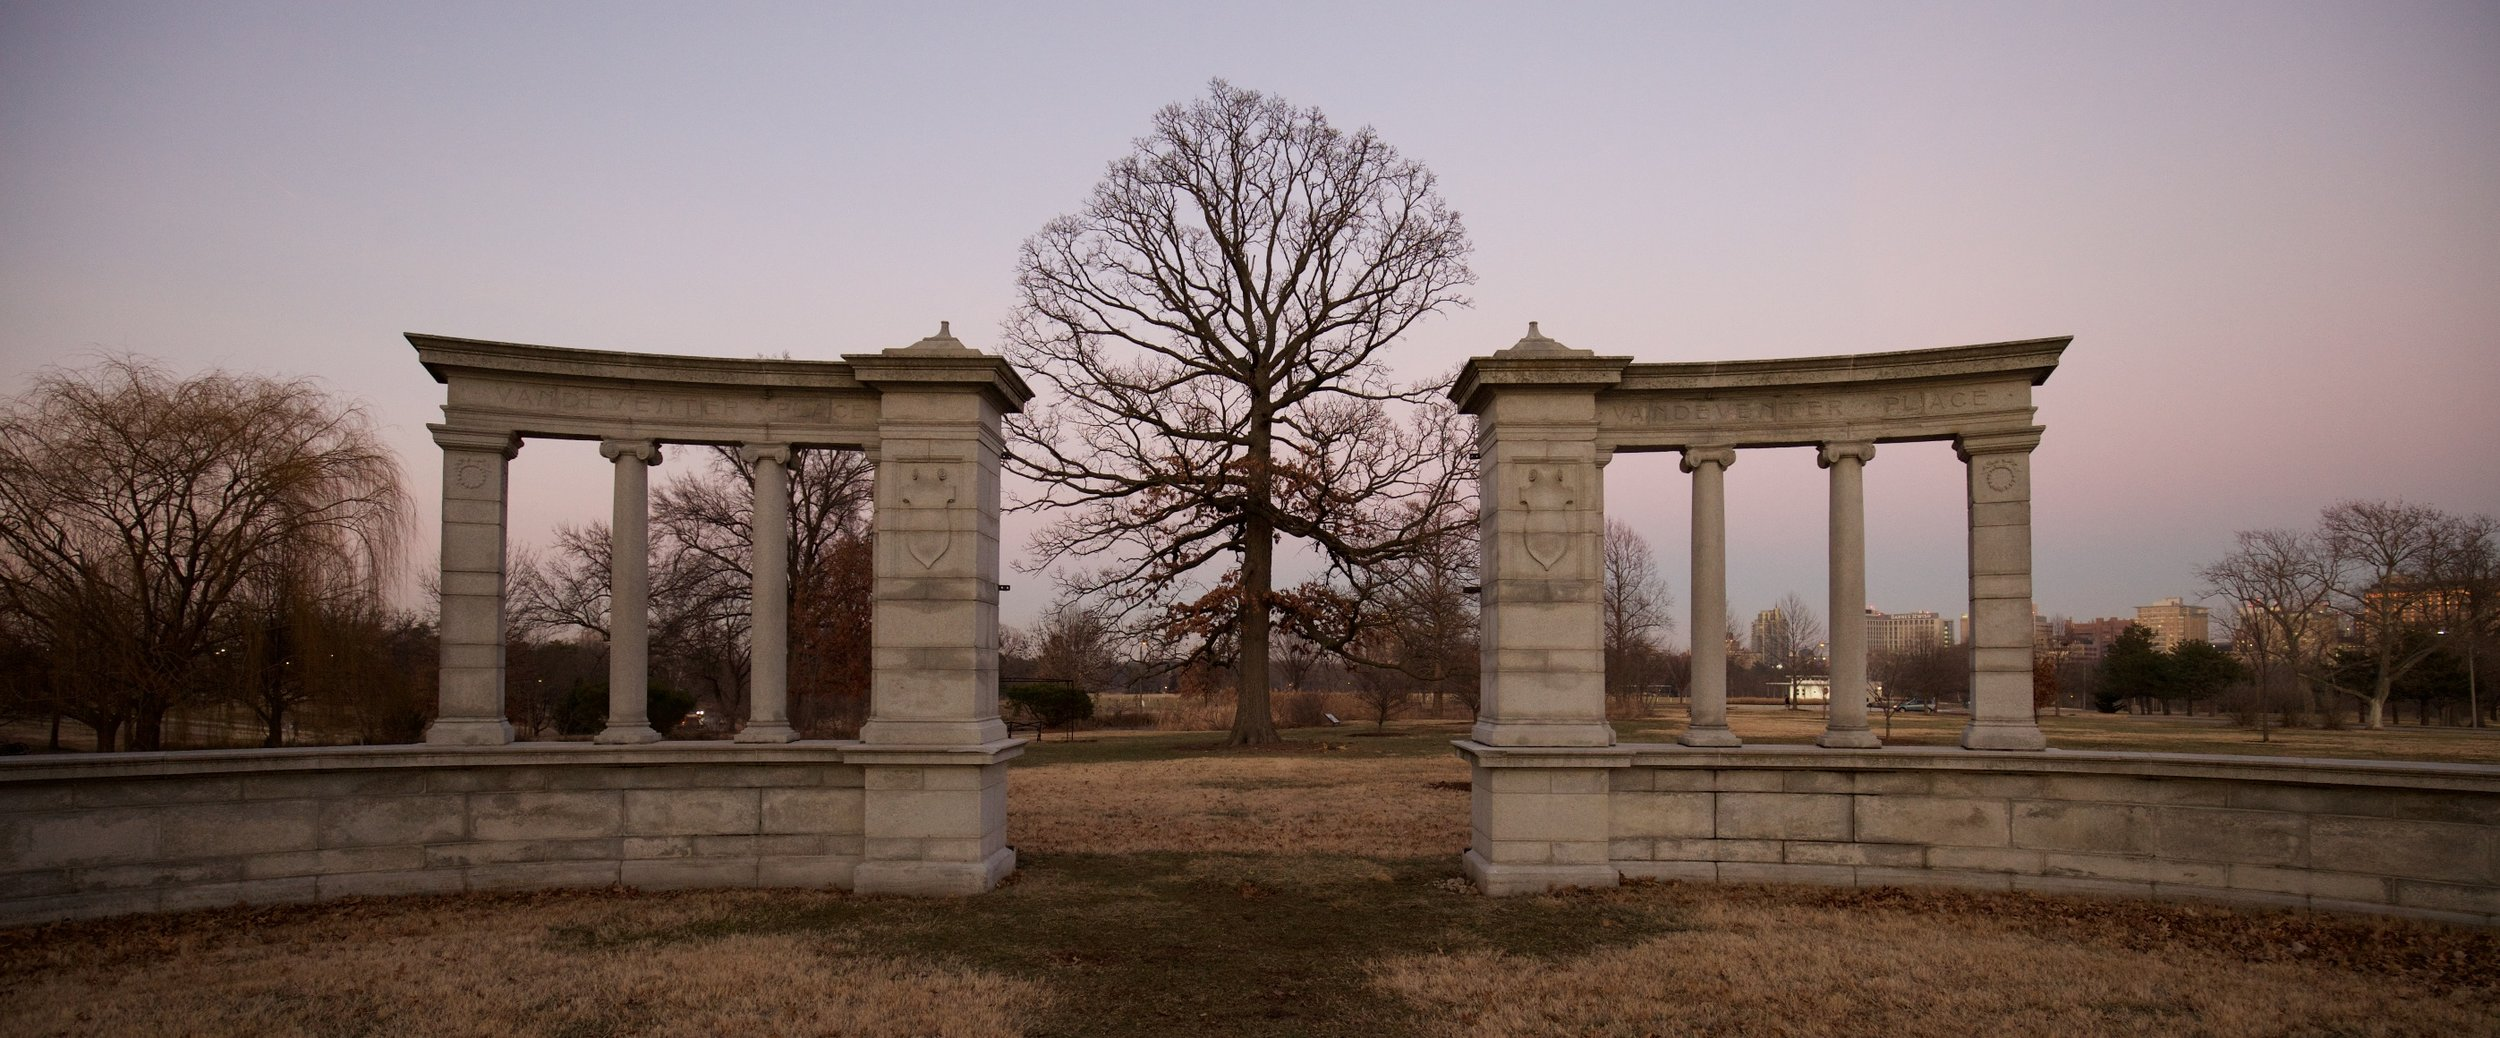 The Vandeventer Place Gates is all that remains of the Fin de siècle private neighborhood.